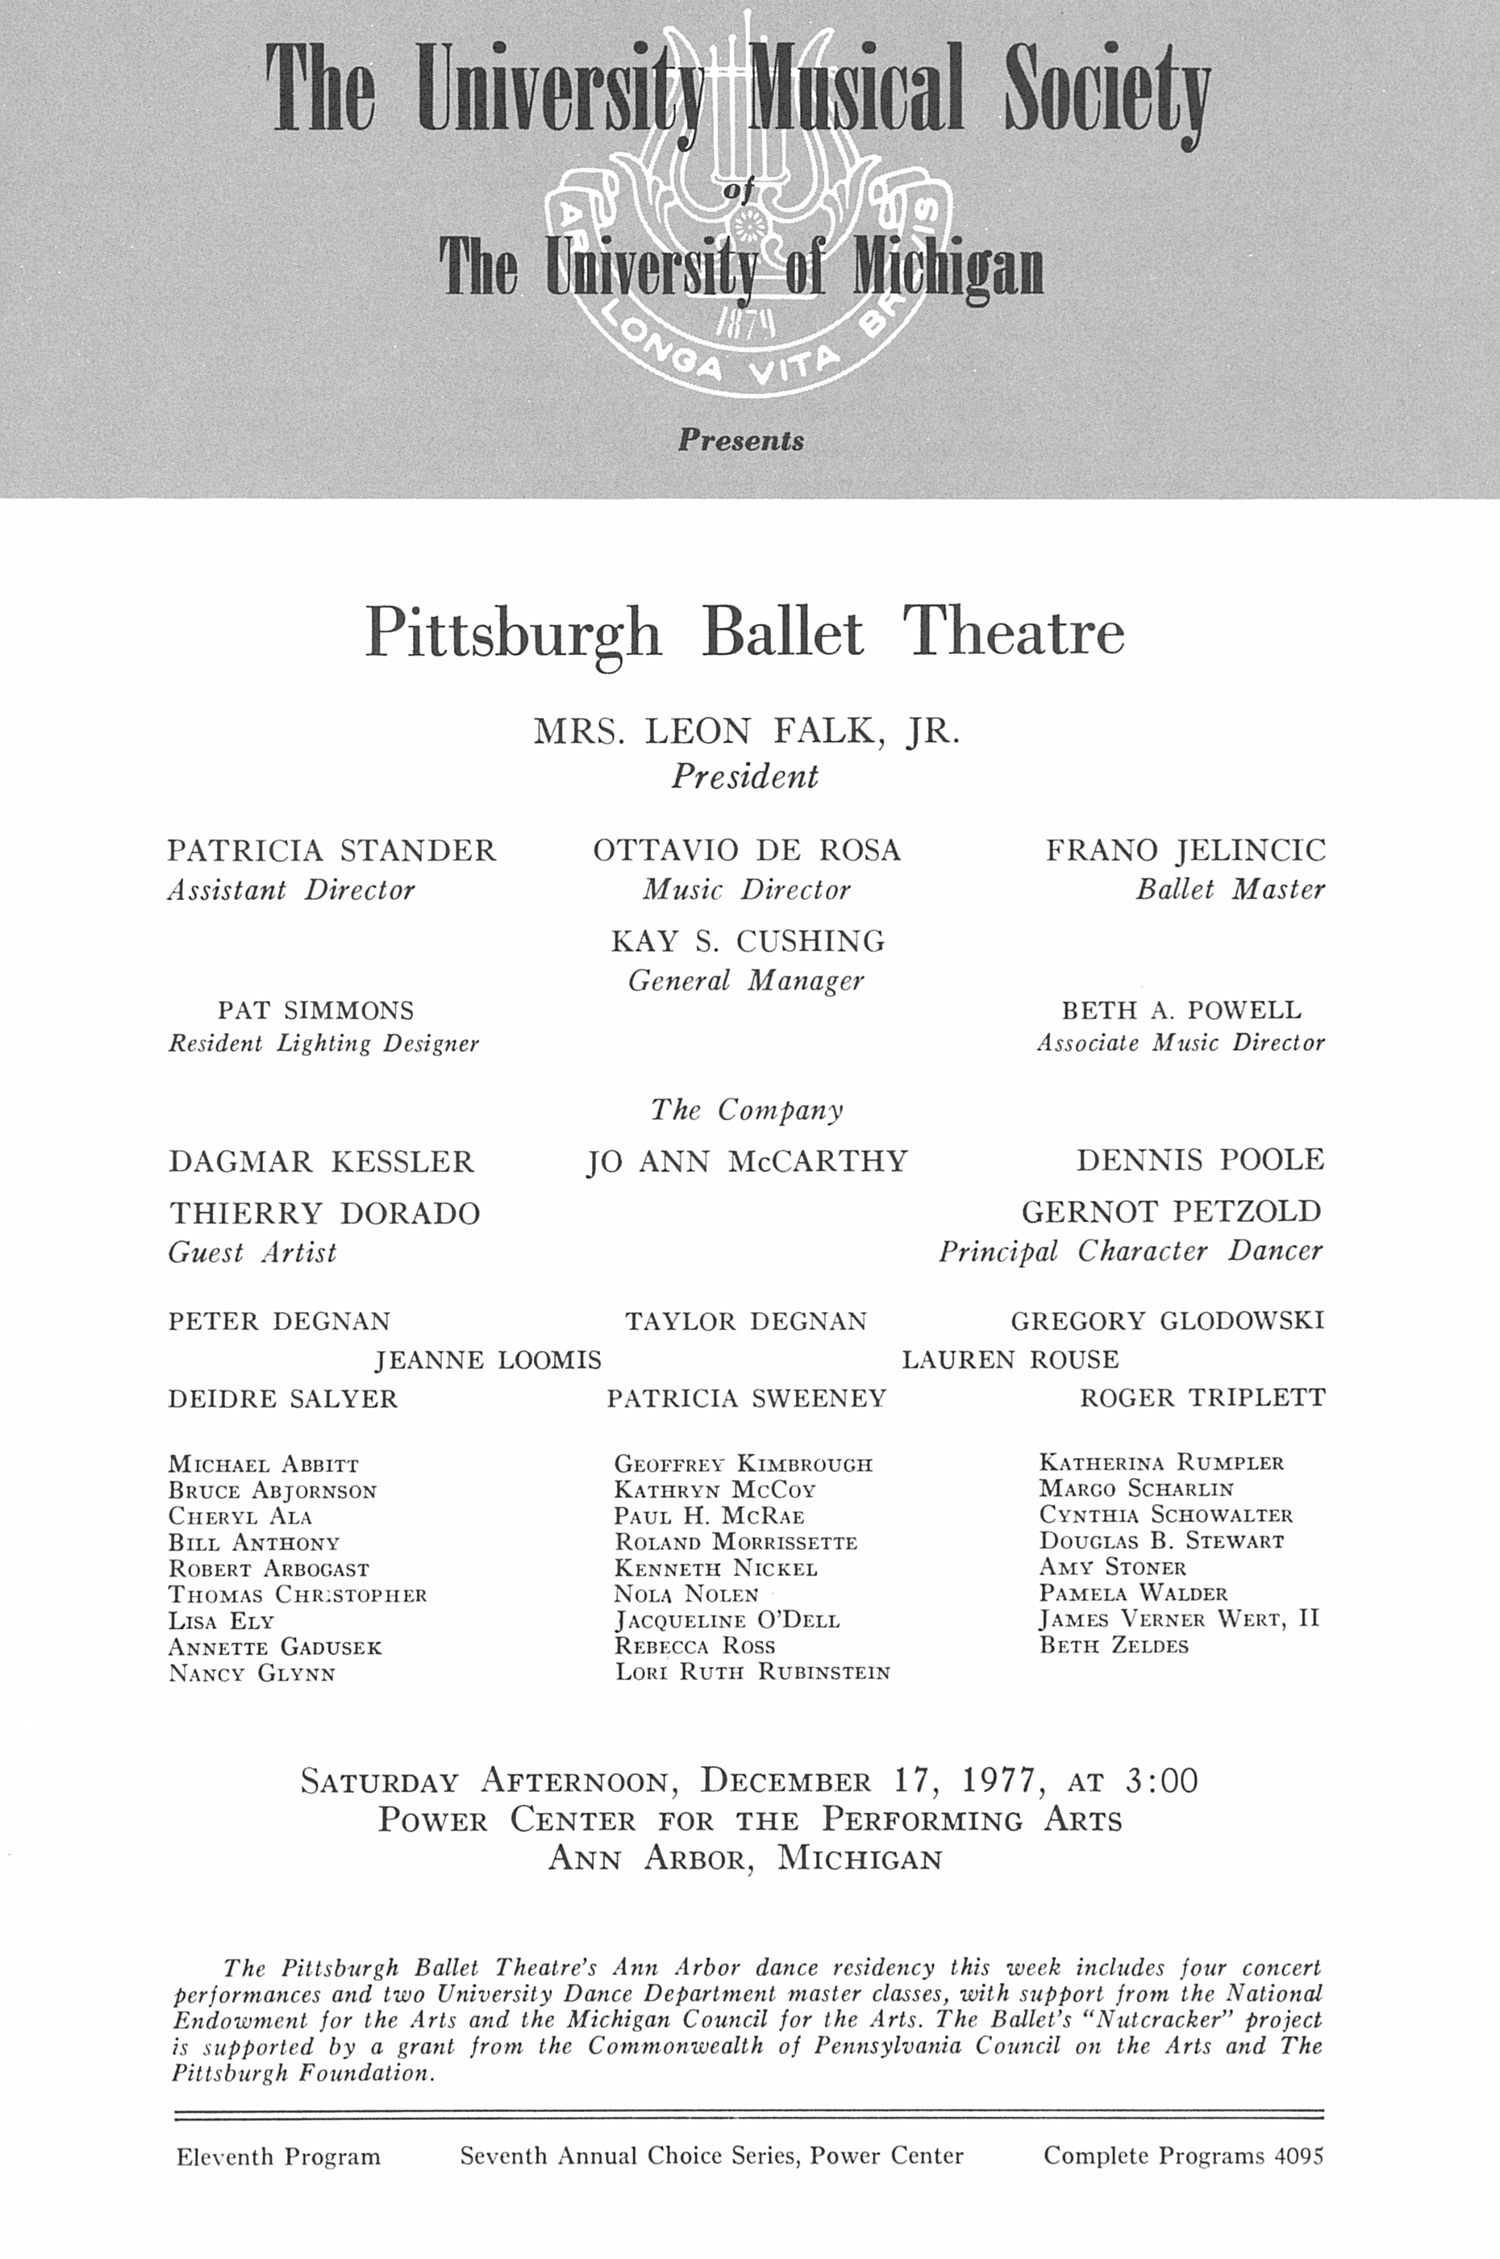 UMS Concert Program, December 17, 1977: Pittsburgh Ballet Theatre -- Mrs. Leon Falk, Jr. image